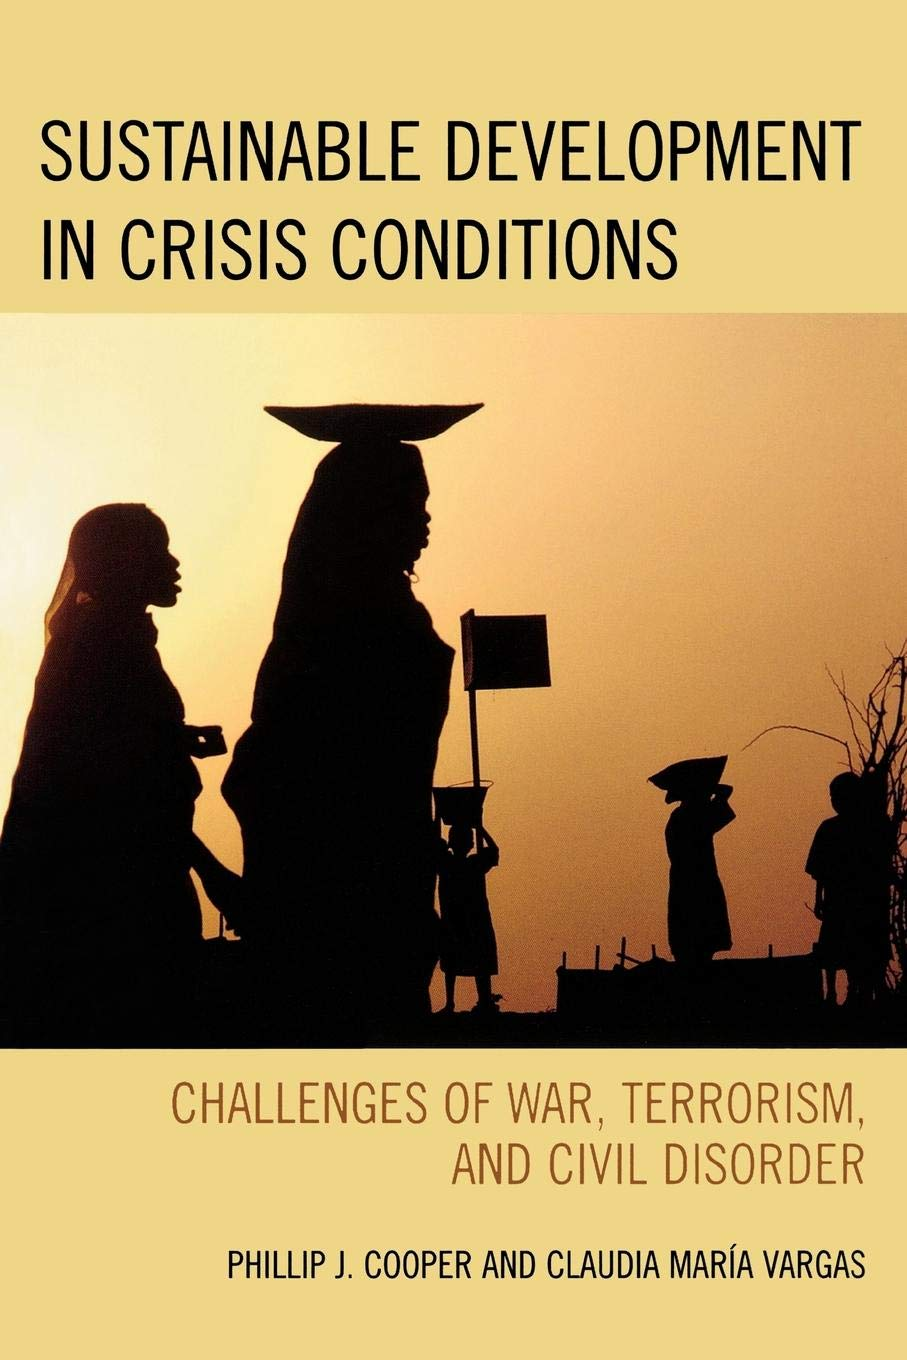 Sustainable Development in Crisis Conditions: Challenges of War, Terrorism, and Civil Disorder PDF